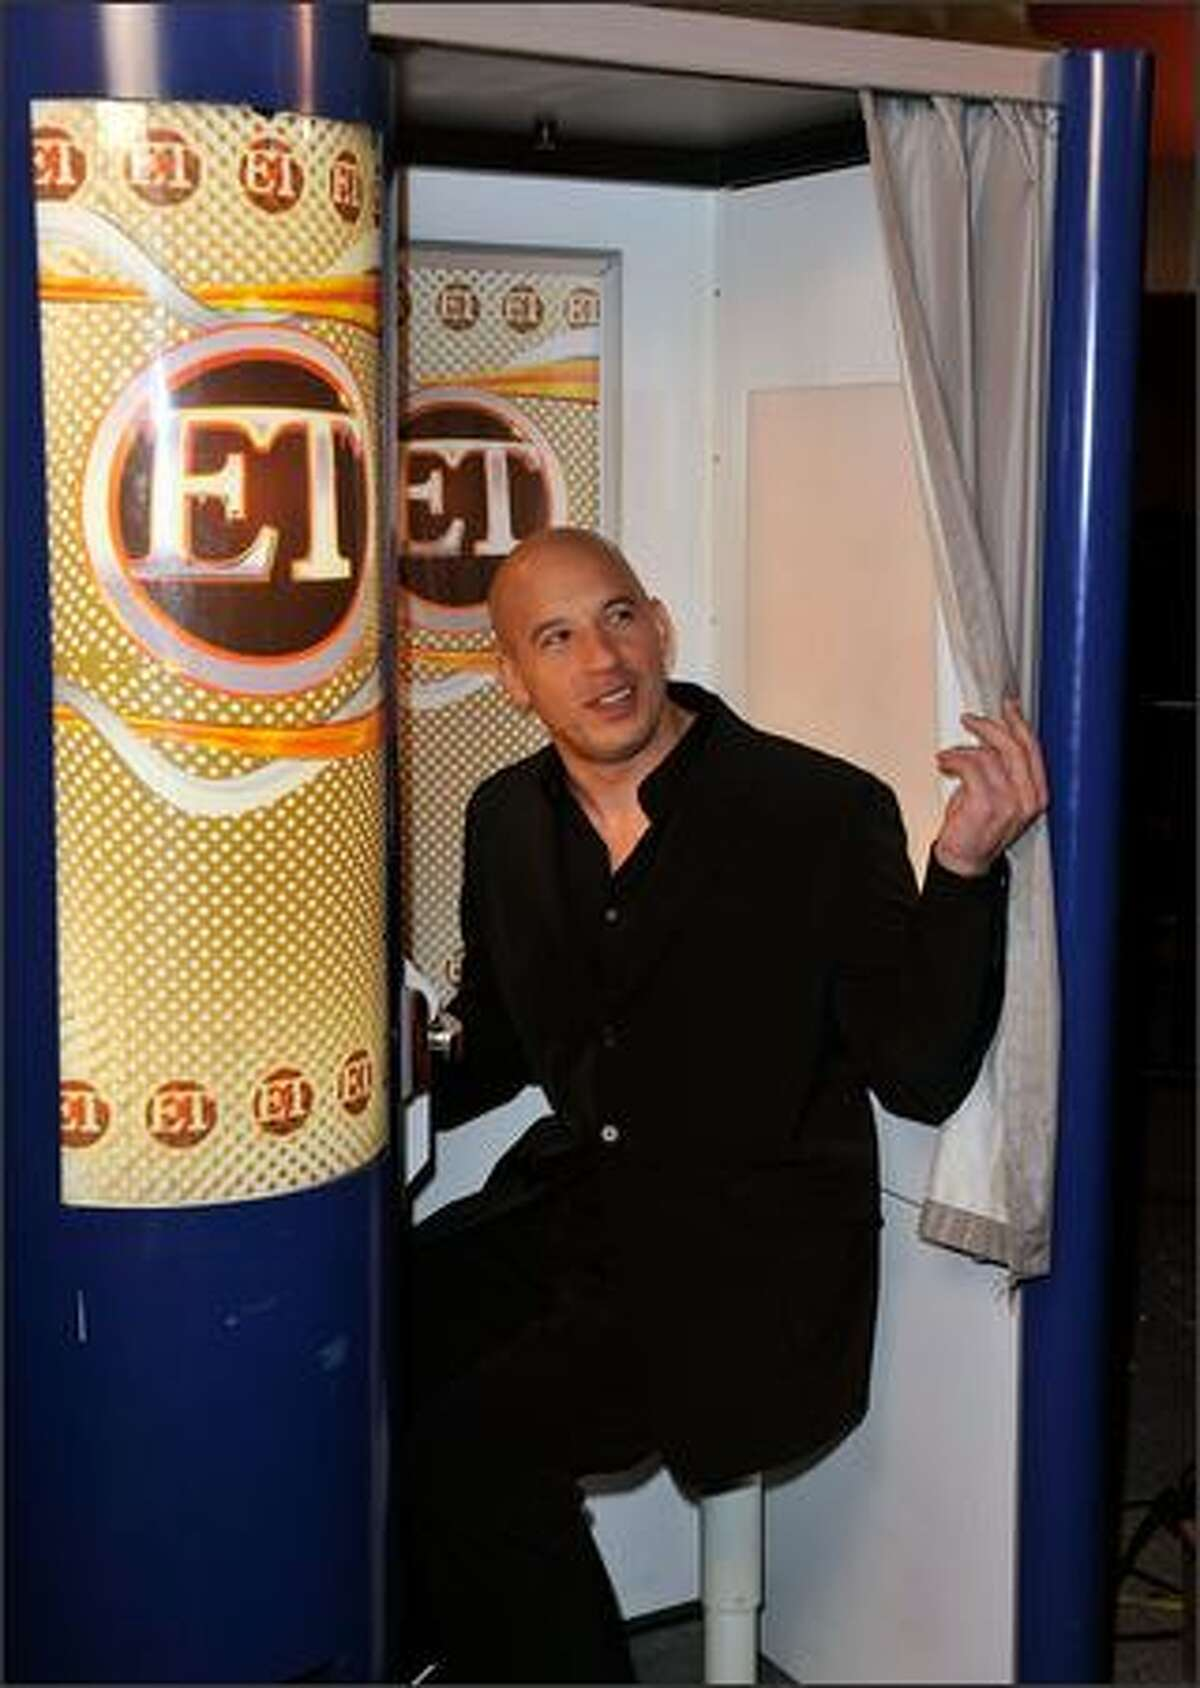 Actor Vin Diesel arrives at the premiere of